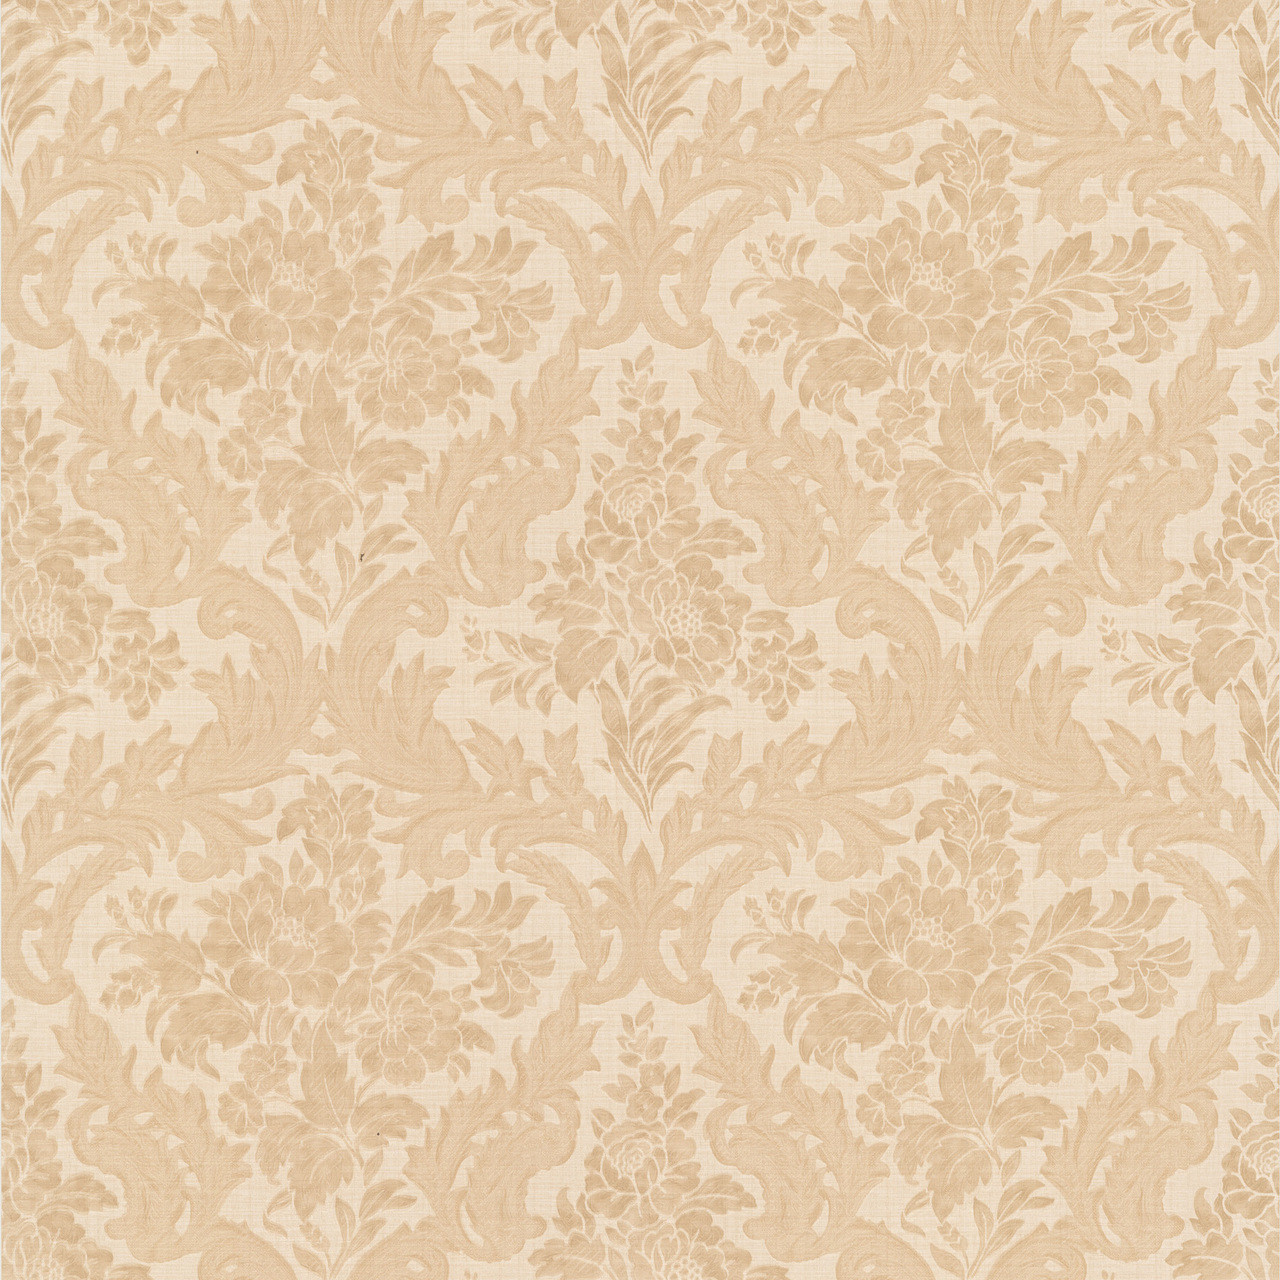 Simply Satin Vi 990 65064 Cotswold Peach Floral Damask